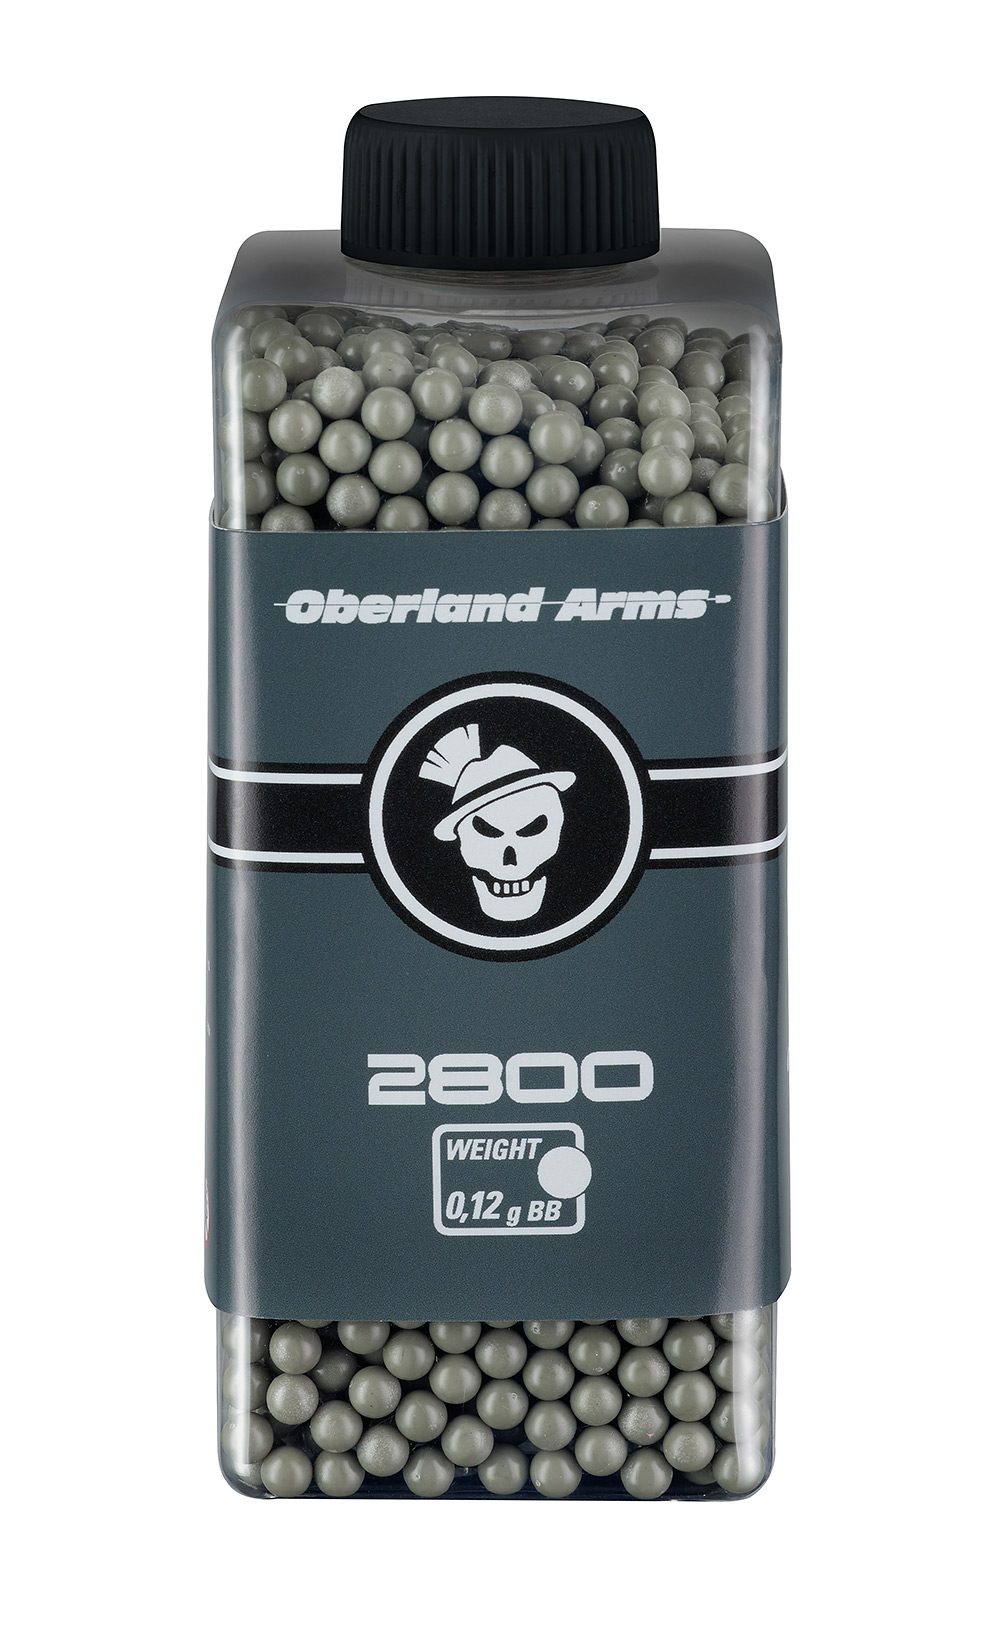 Oberland Black Label BBs 2800 rounds, 0,12g